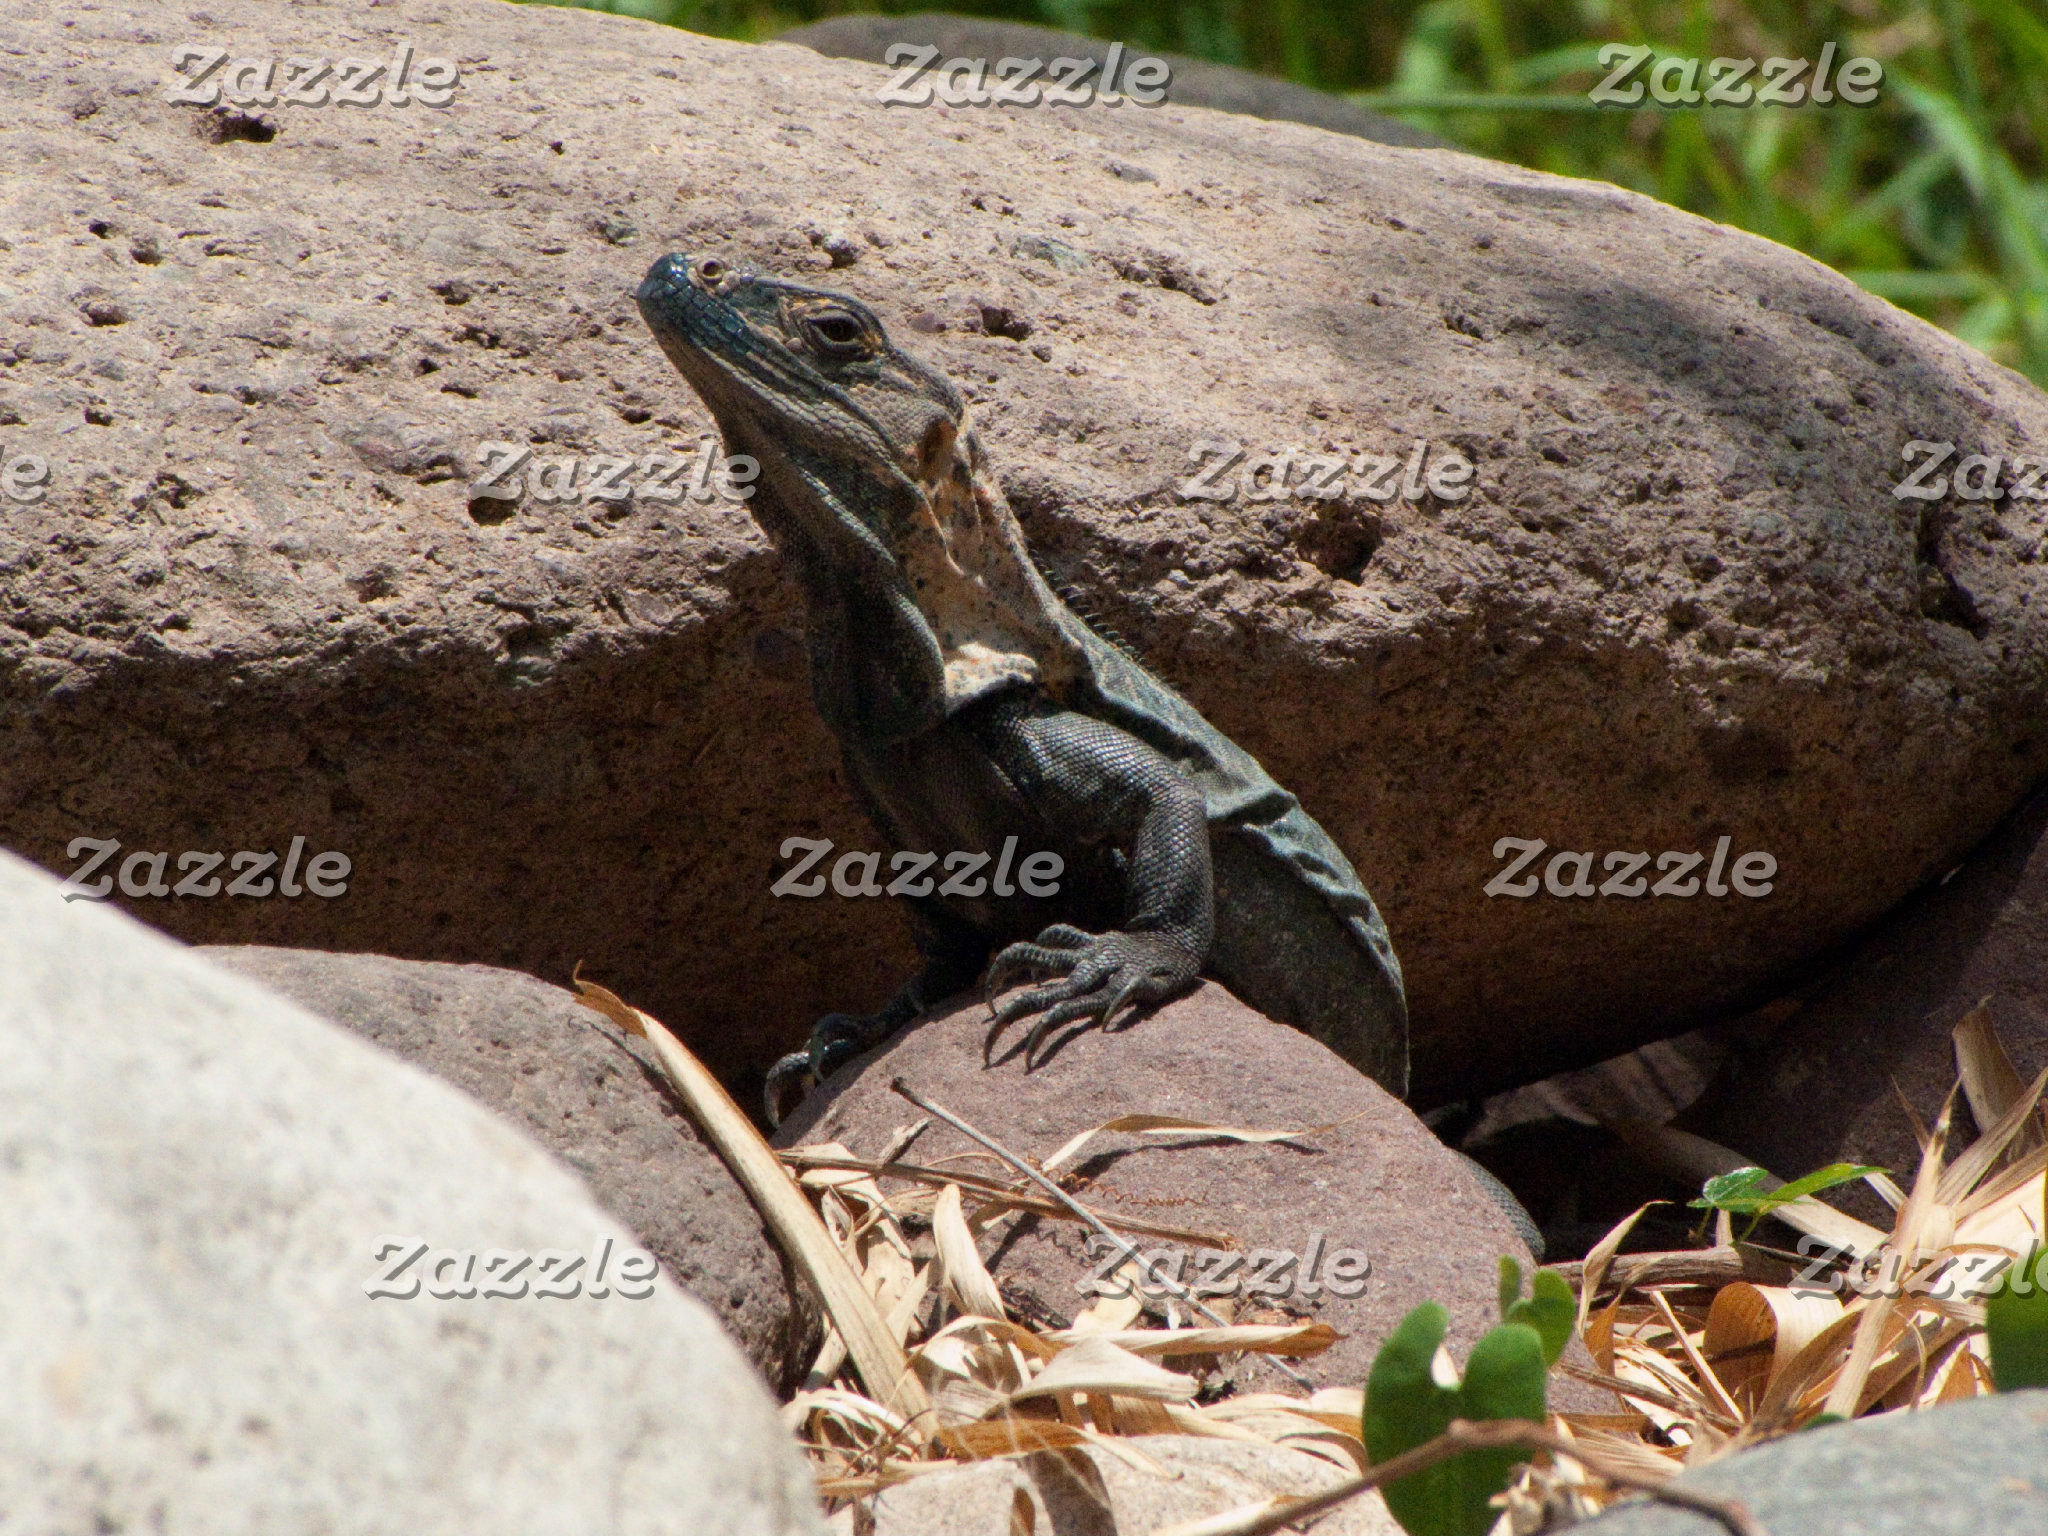 Wildlife-Mexican Critters